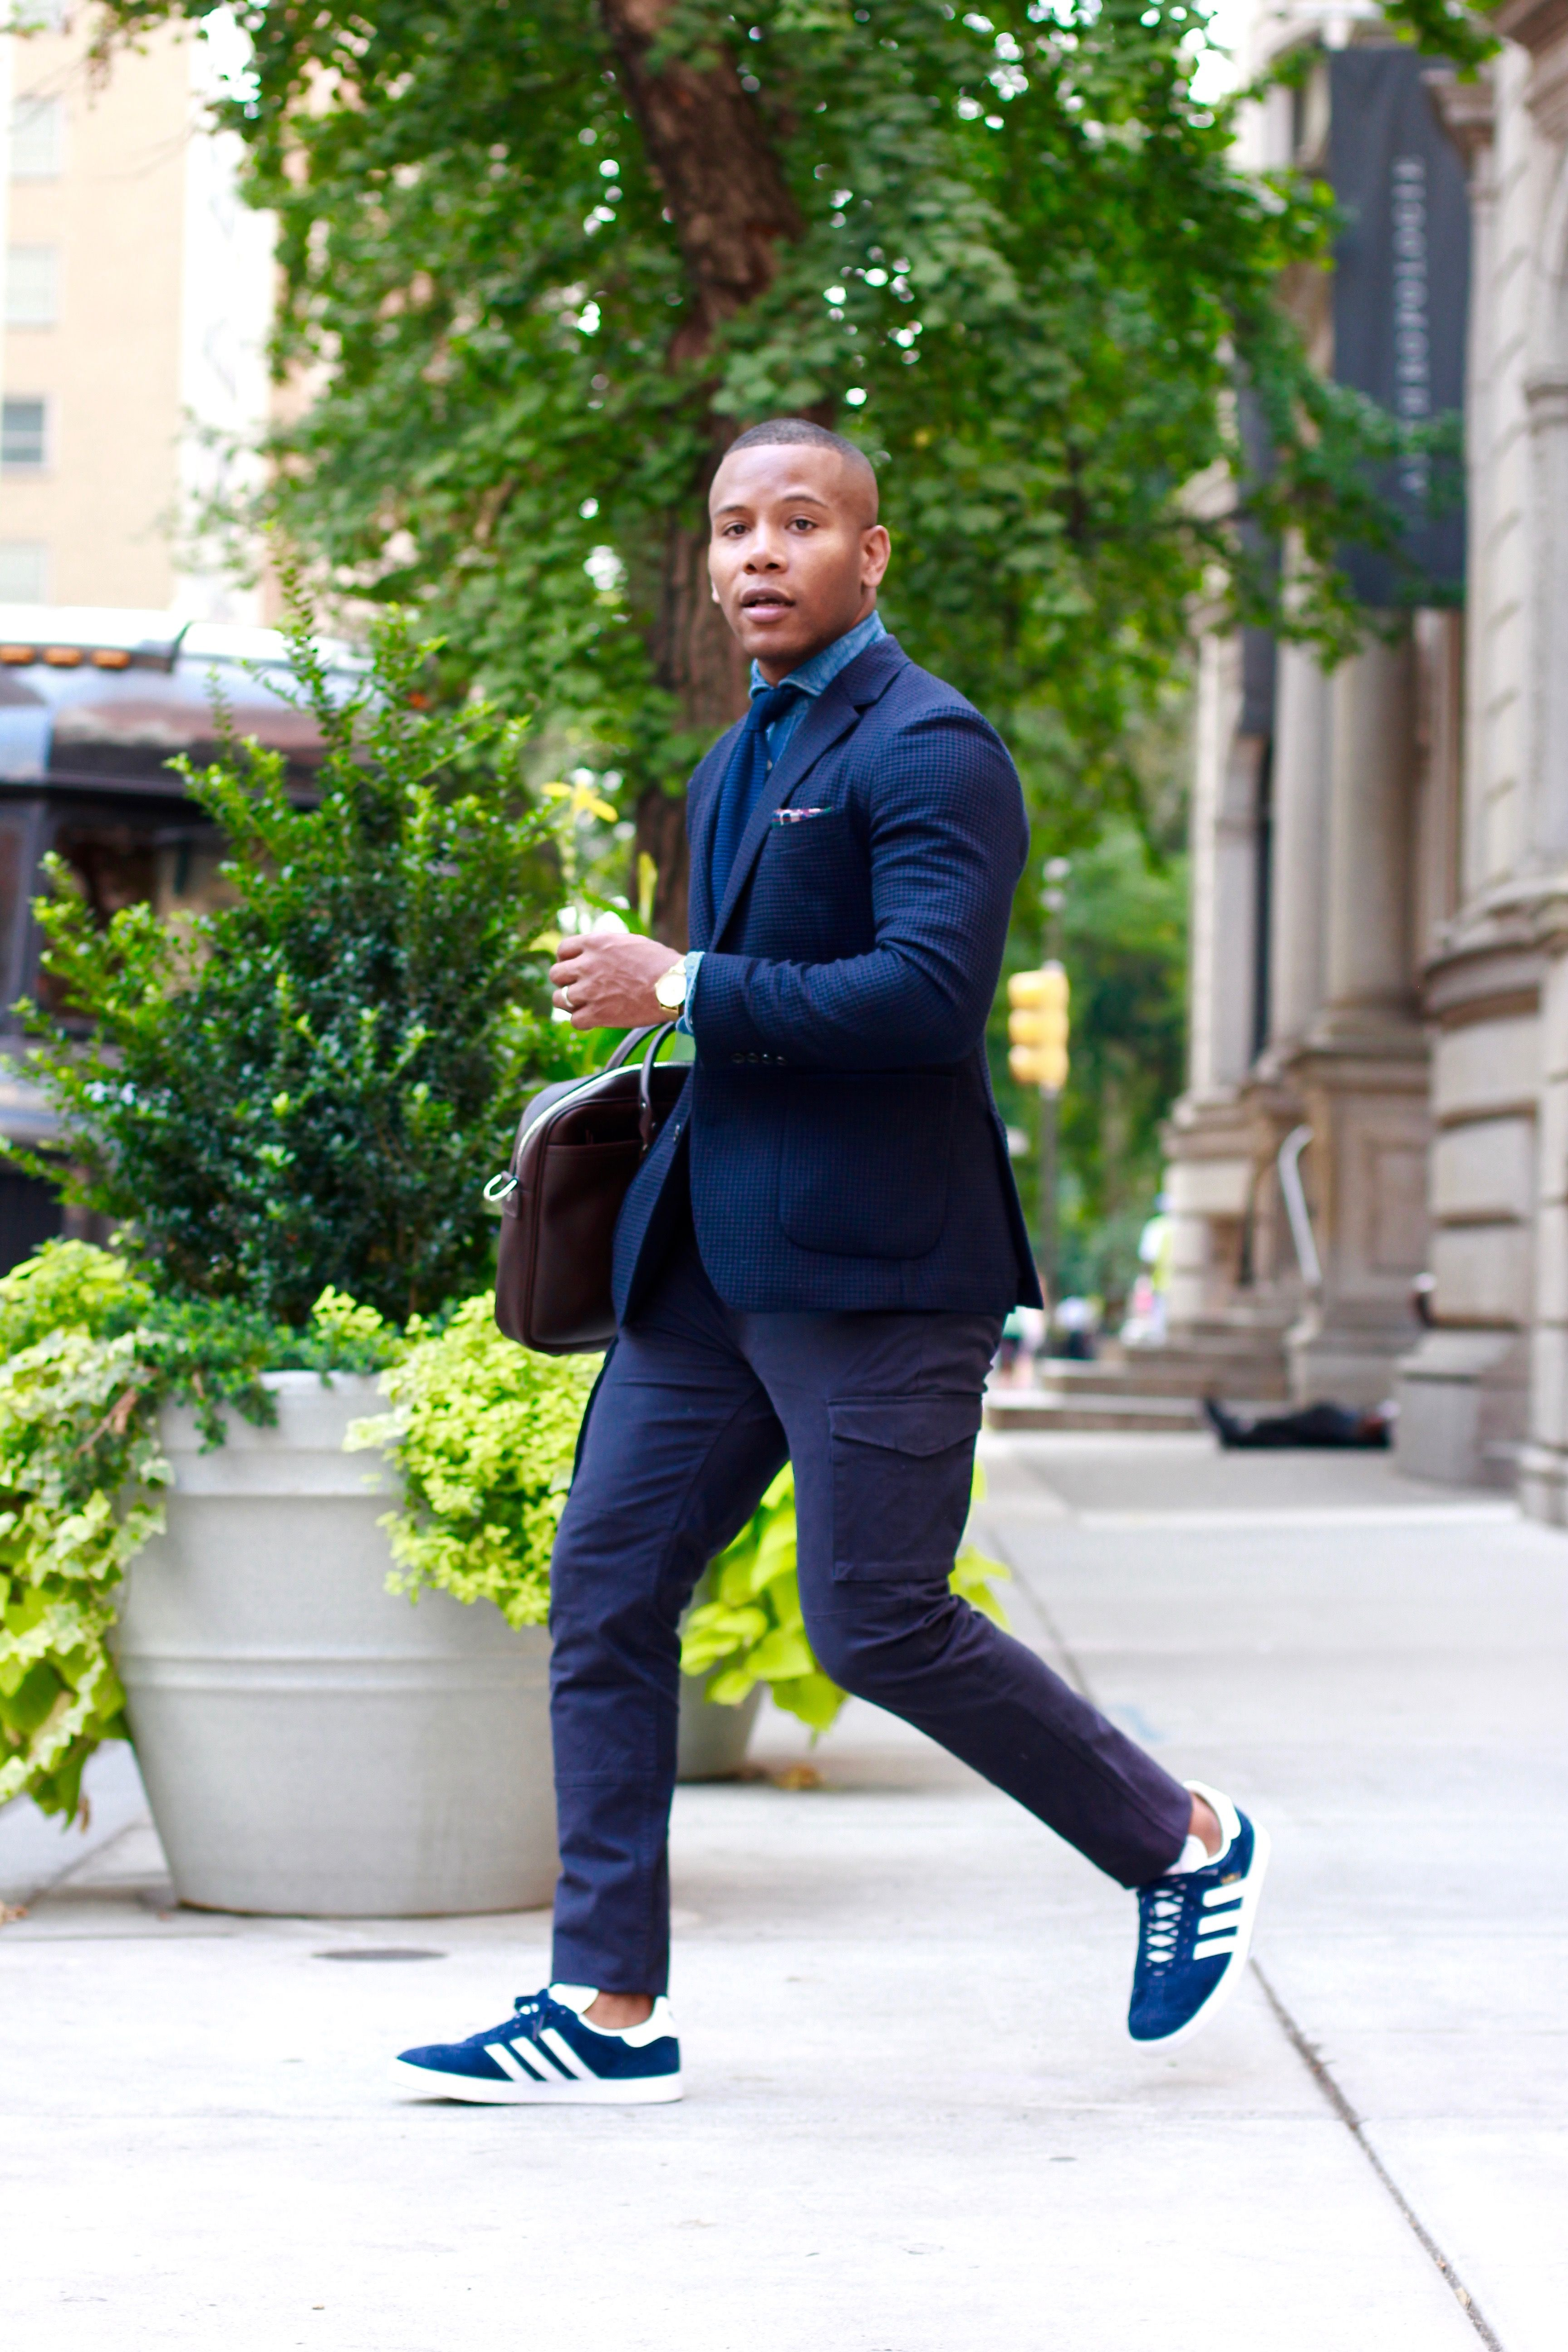 doble dividendo Talla  Sabir M. Peele of @mensstylepro rocking @adidas gazelle #sneakers c/o  @sizeofficial #menswear #me… | Sneakers outfit men, Suits and sneakers,  Sneakers men fashion